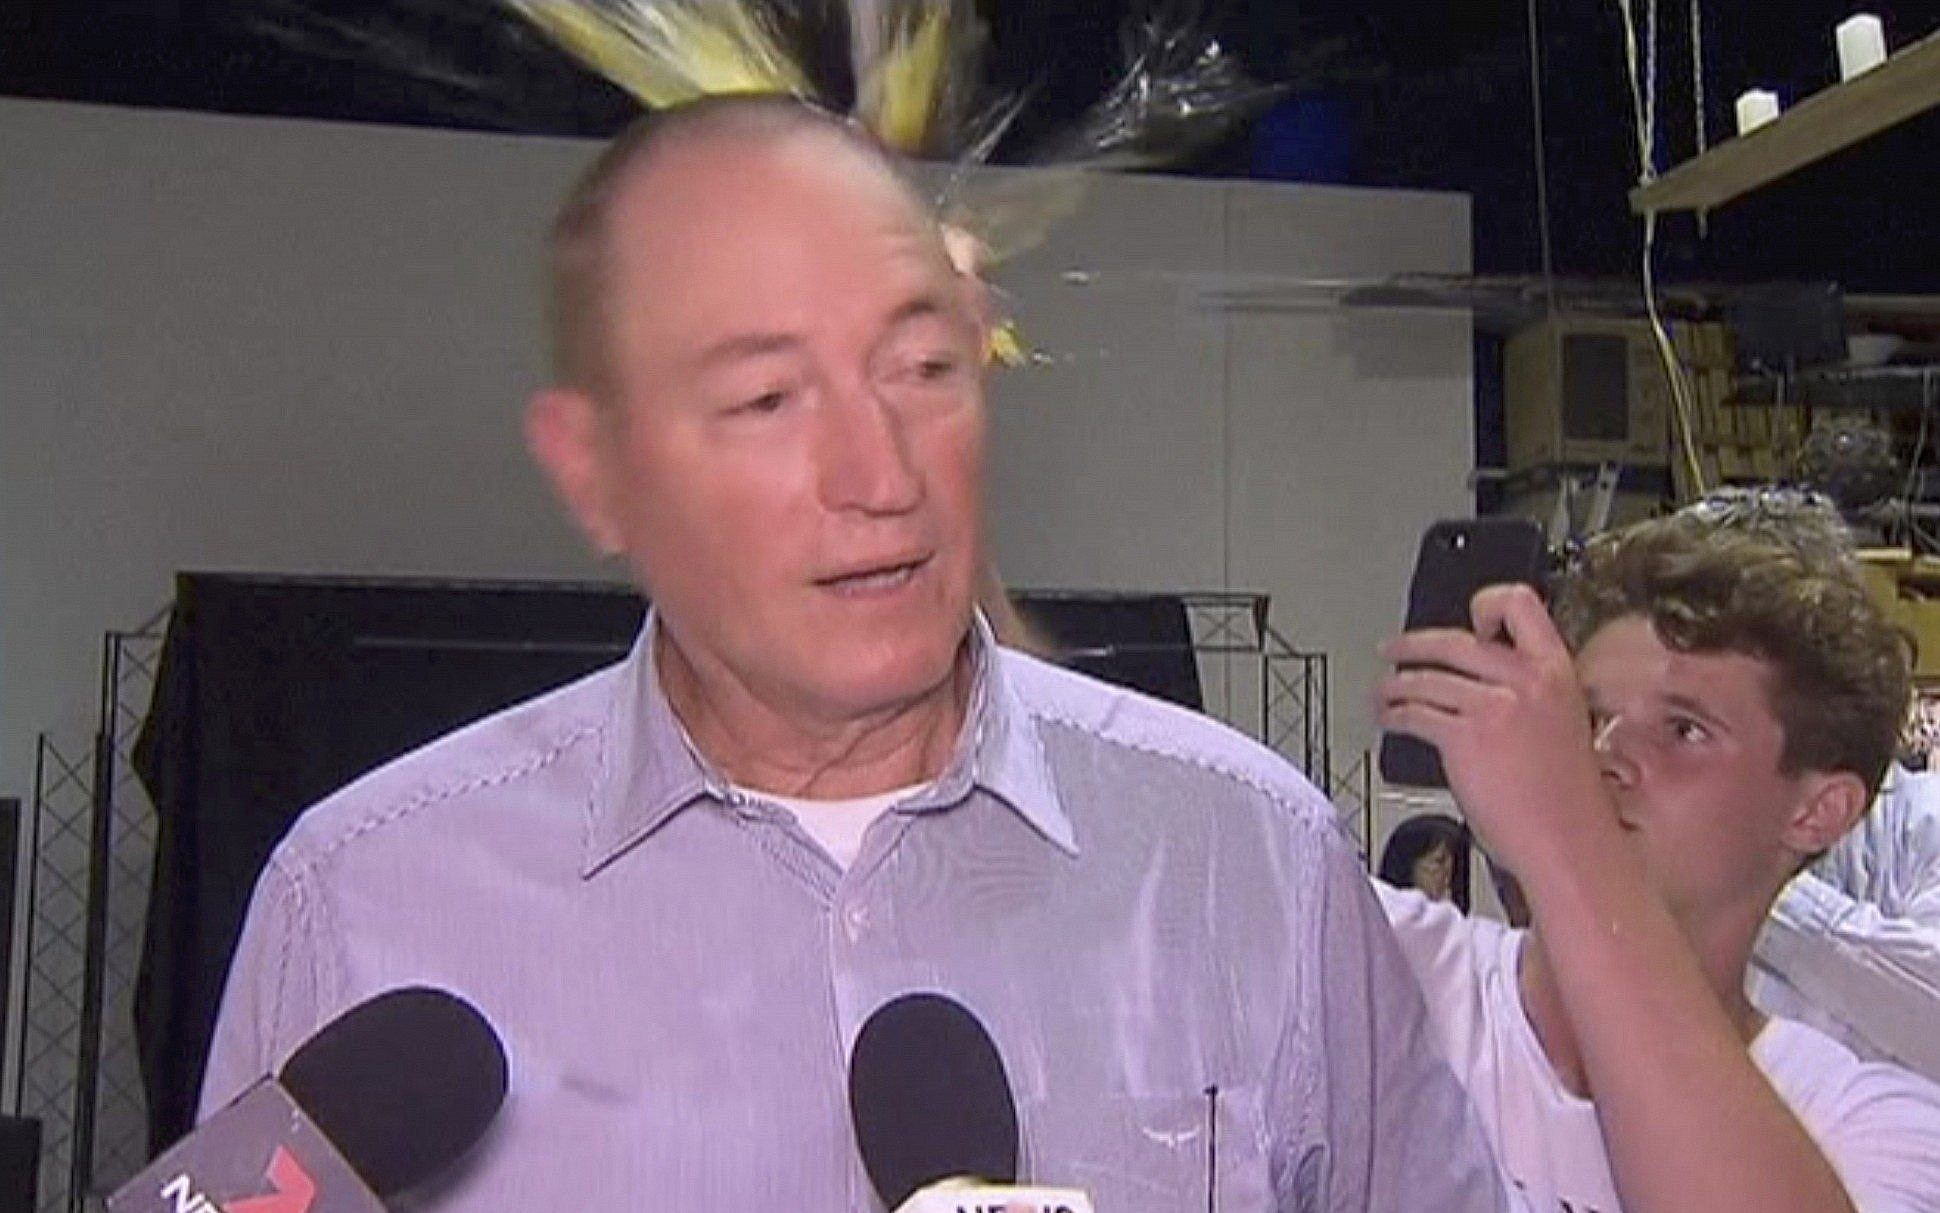 Fraser Anning slaps teenager after being hit over the head with egg